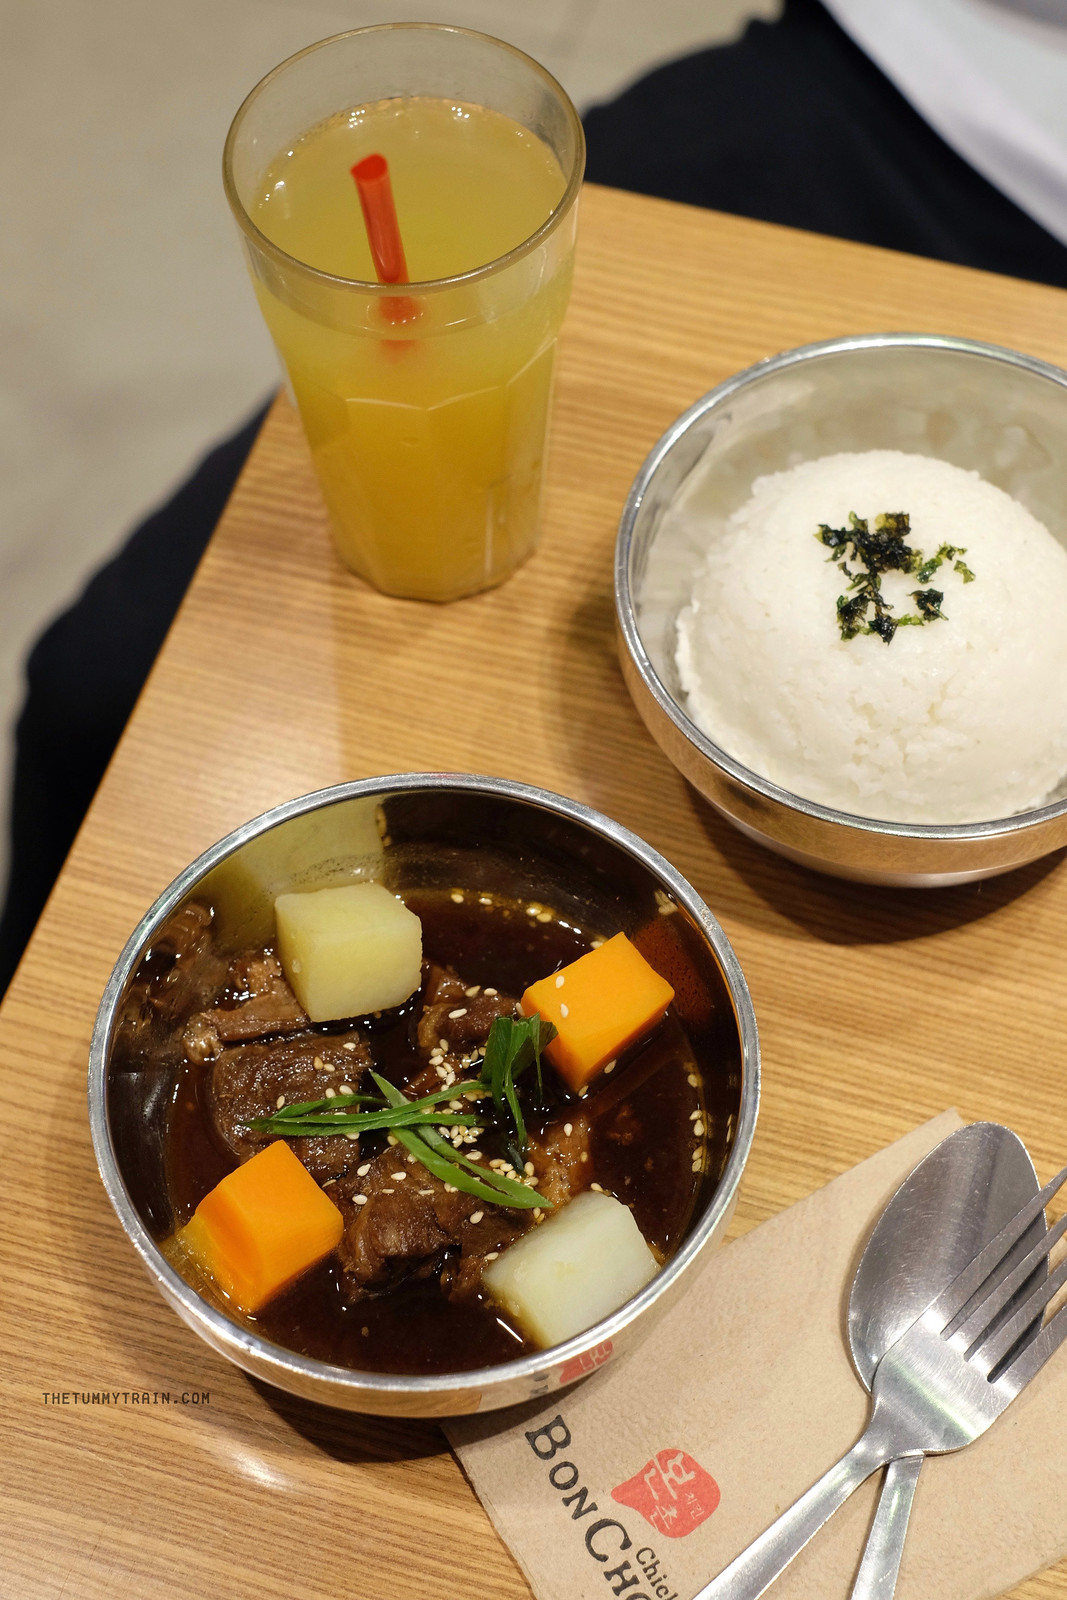 34605568344 0bb2af851f h - Looking to #BeefUp your meals? Try BonChon's Korean Beef Stew